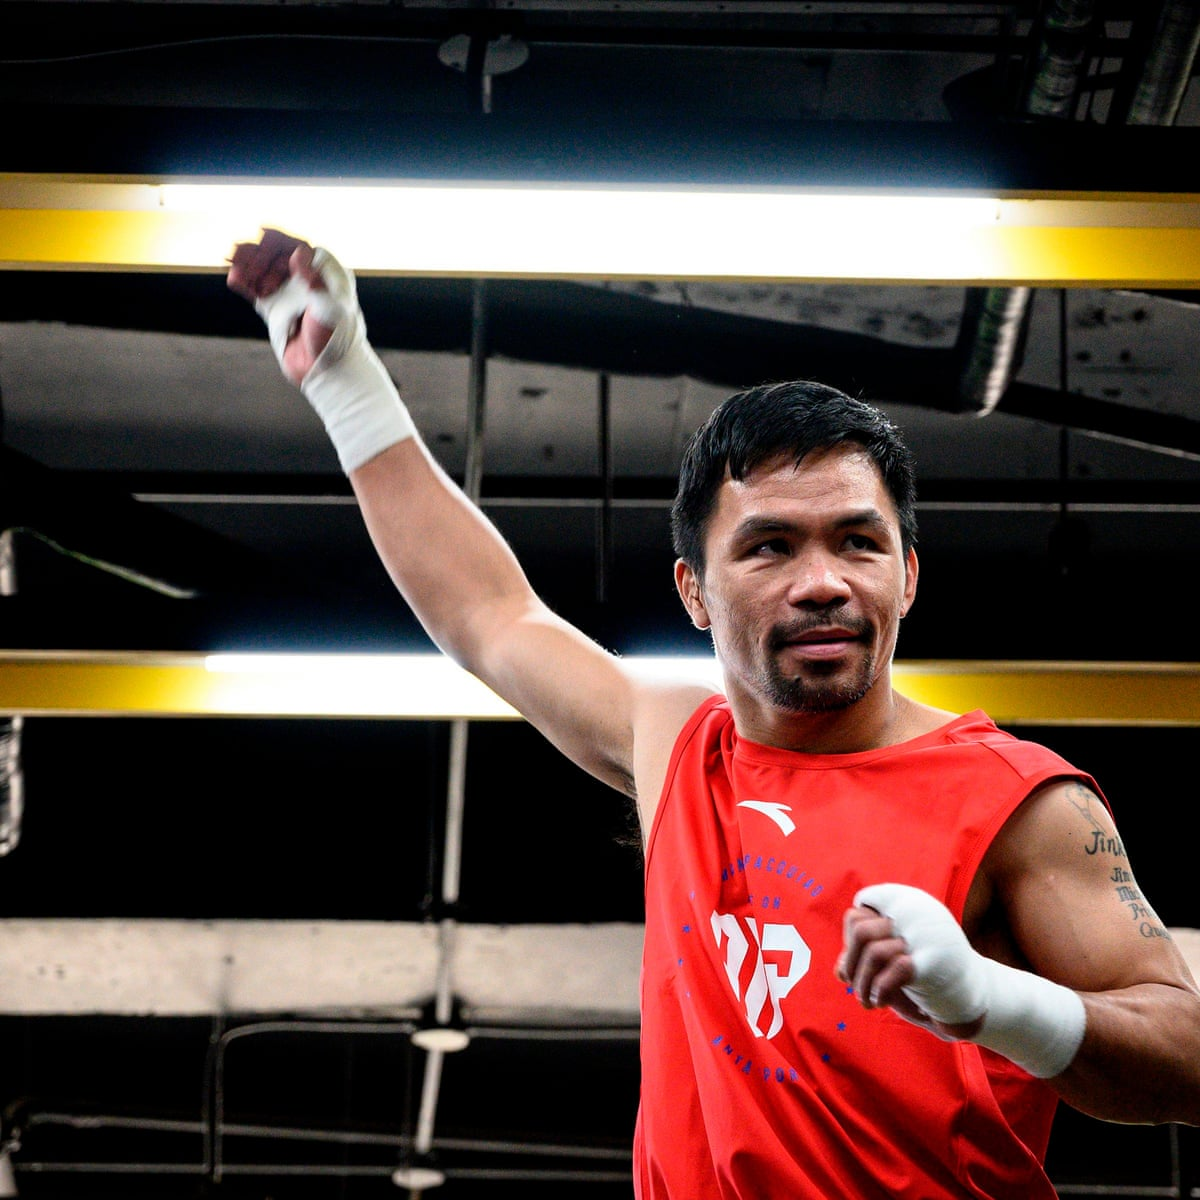 Manny Pacquiao confirms fight with Conor McGregor next year | Manny Pacquiao | The Guardian